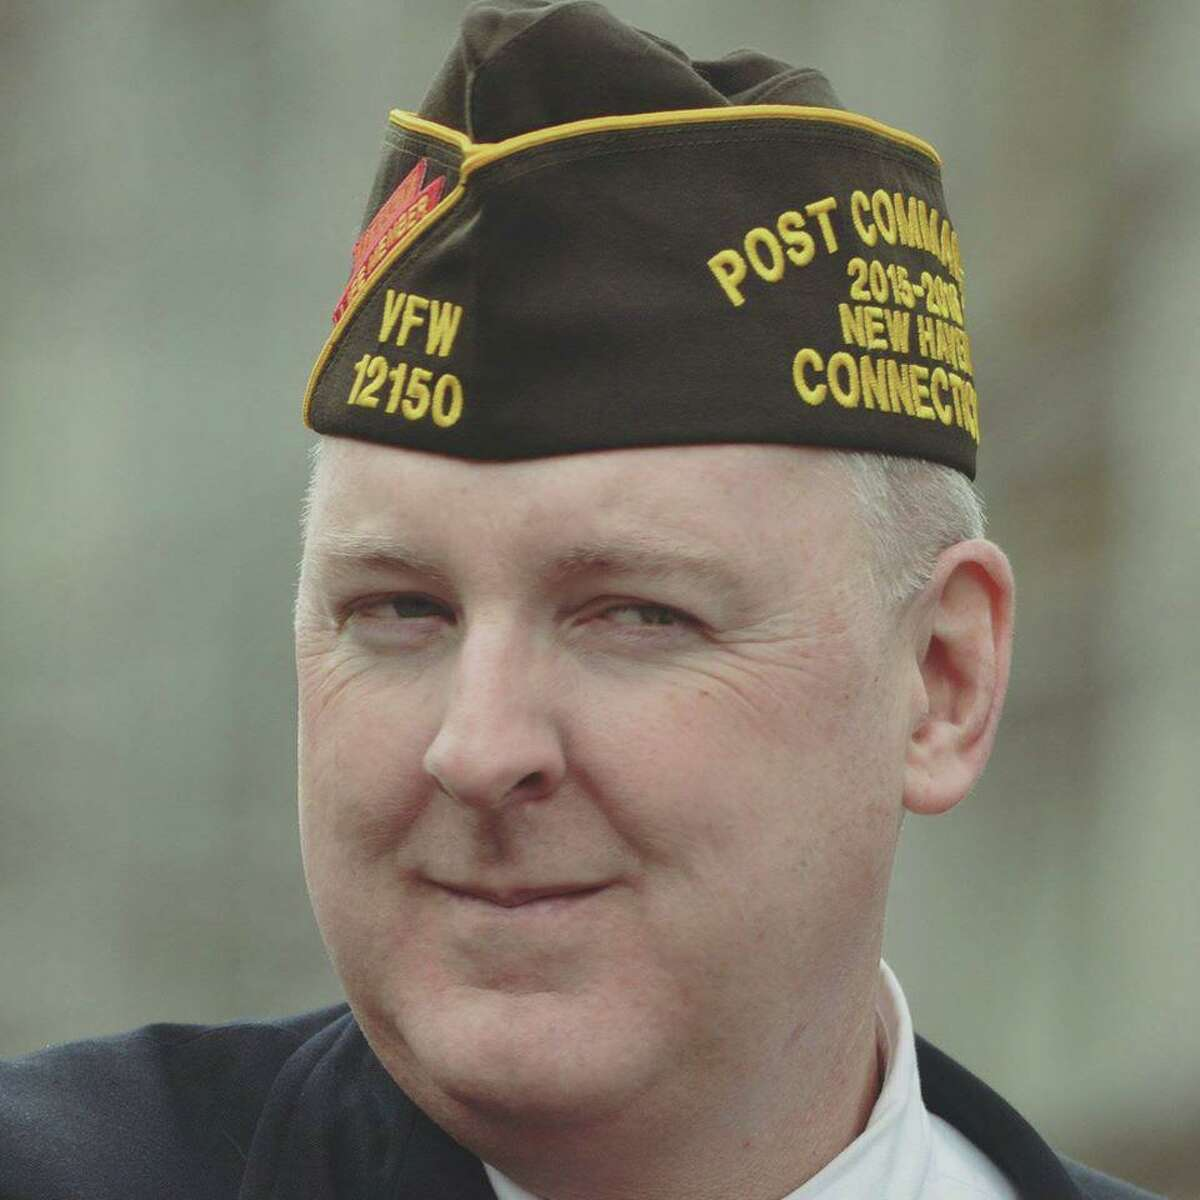 Charles M. Pickett is the commander of the American Legion New Haven Post 210 and quartermaster of the VFW New Haven Post 12150.